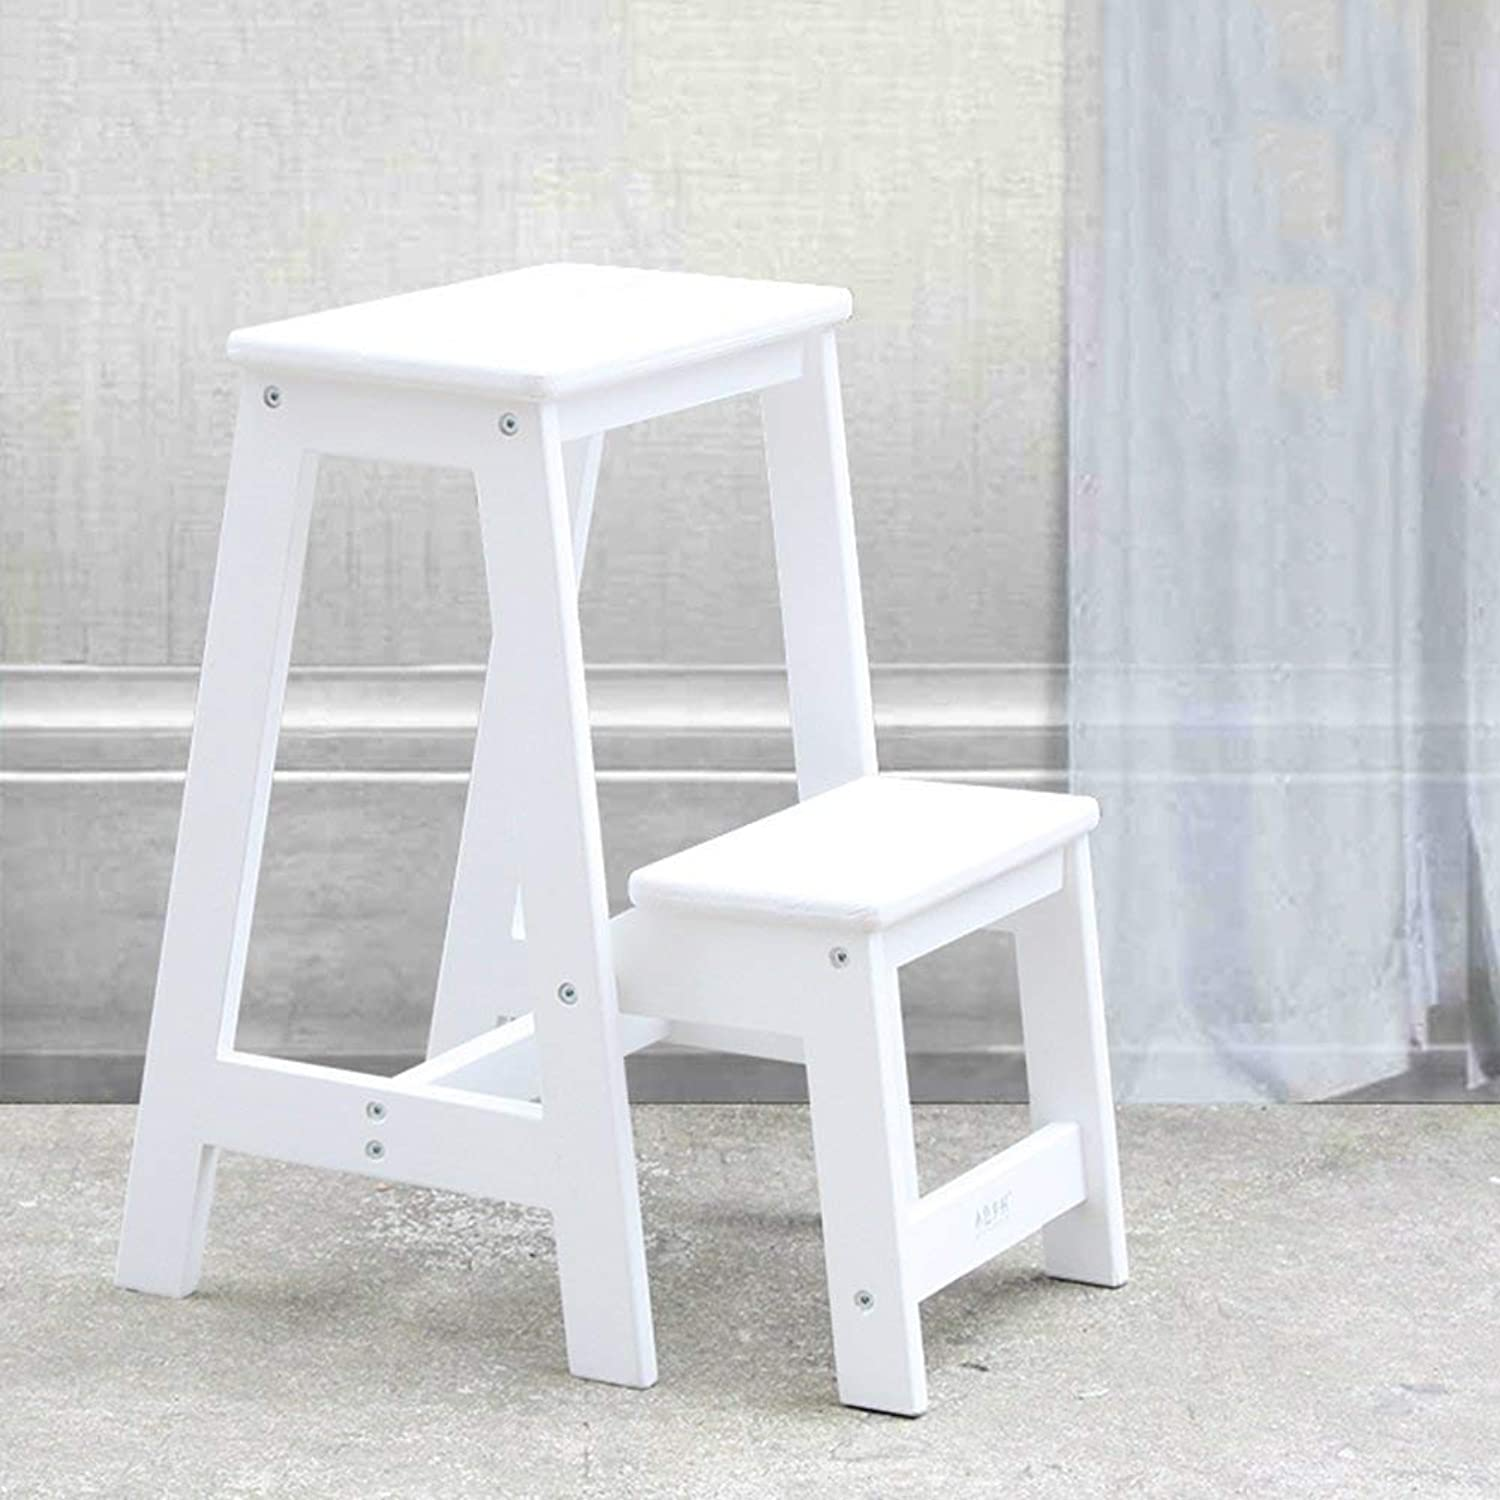 JINQD HOME Home folding wooden ladder multi-purpose staircase chair ladder stool indoor ladder home kitchen stool. - step stool (color   White)